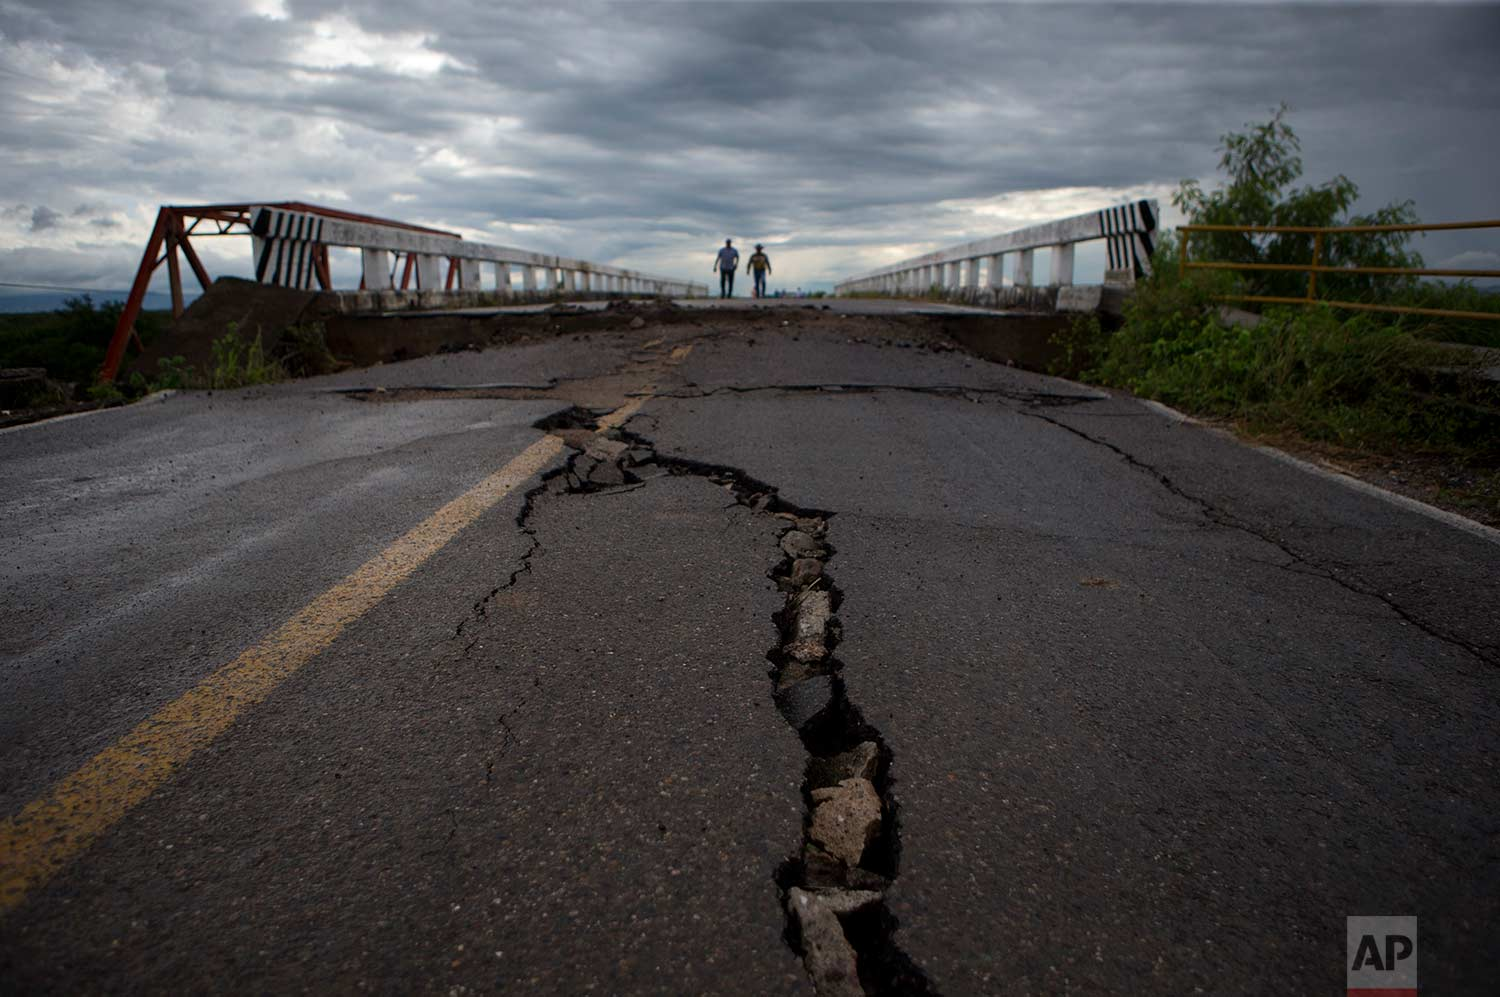 Men walk across the bridge that connects Juchitan to Union Hidalgo in Oaxaca state, Mexico, Sunday, Sept. 10, 2017. While the bridge survived Thursday's magnitude 8.1 earthquake, the road leading up to each side fissured and the supporting walls buckled. (AP Photo/Rebecca Blackwell)